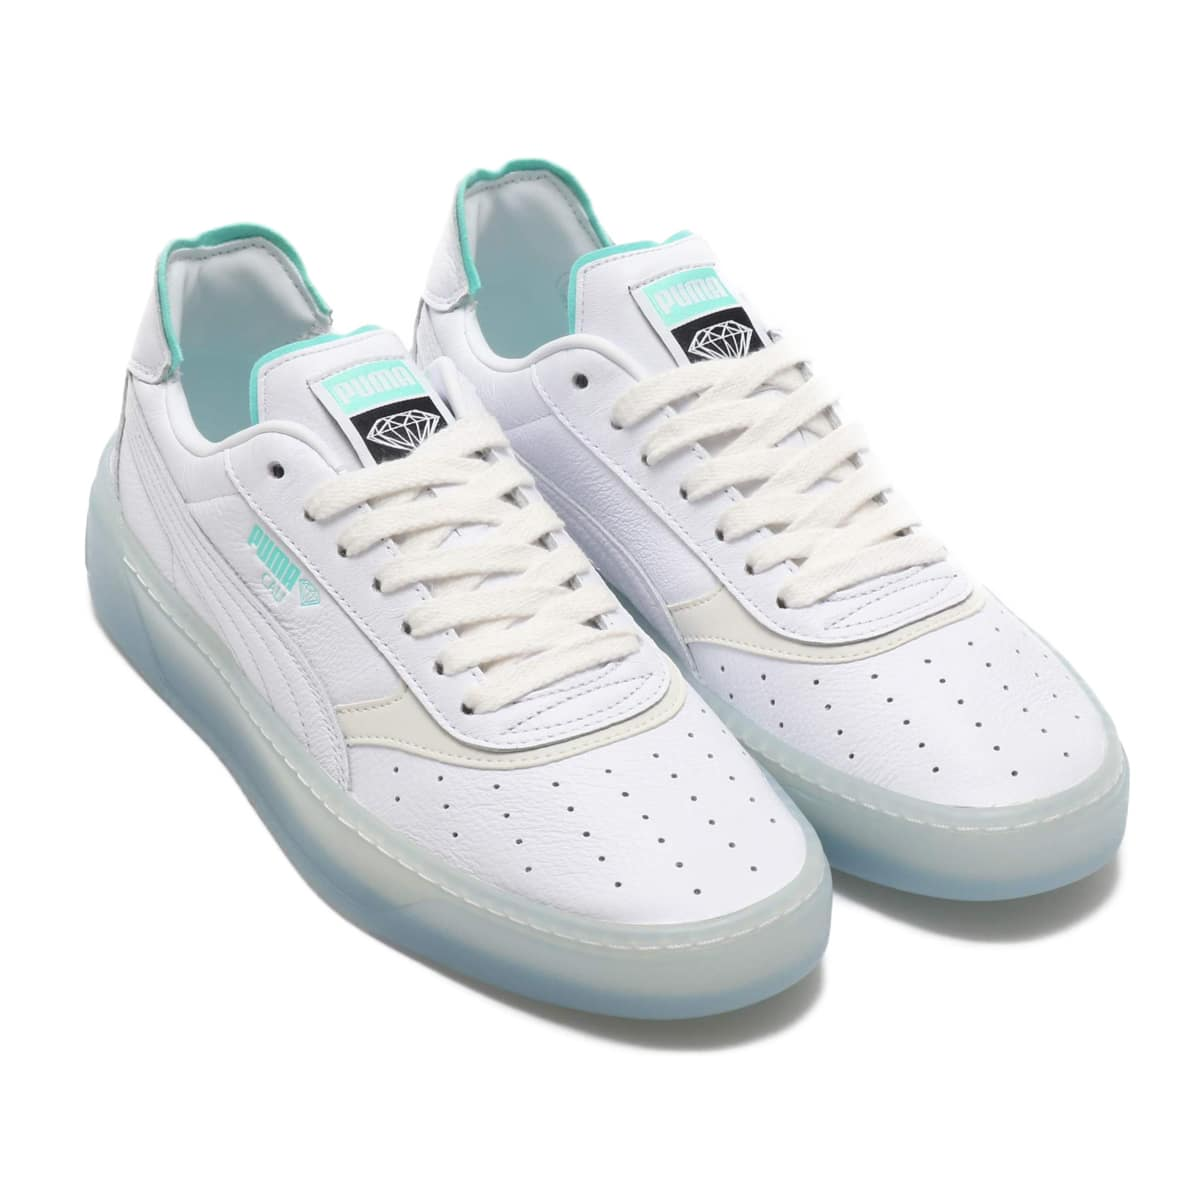 PUMA CALI-0 DIAMOND SUPPLY  PUMA WHITE-PU 19SU-S_photo_large